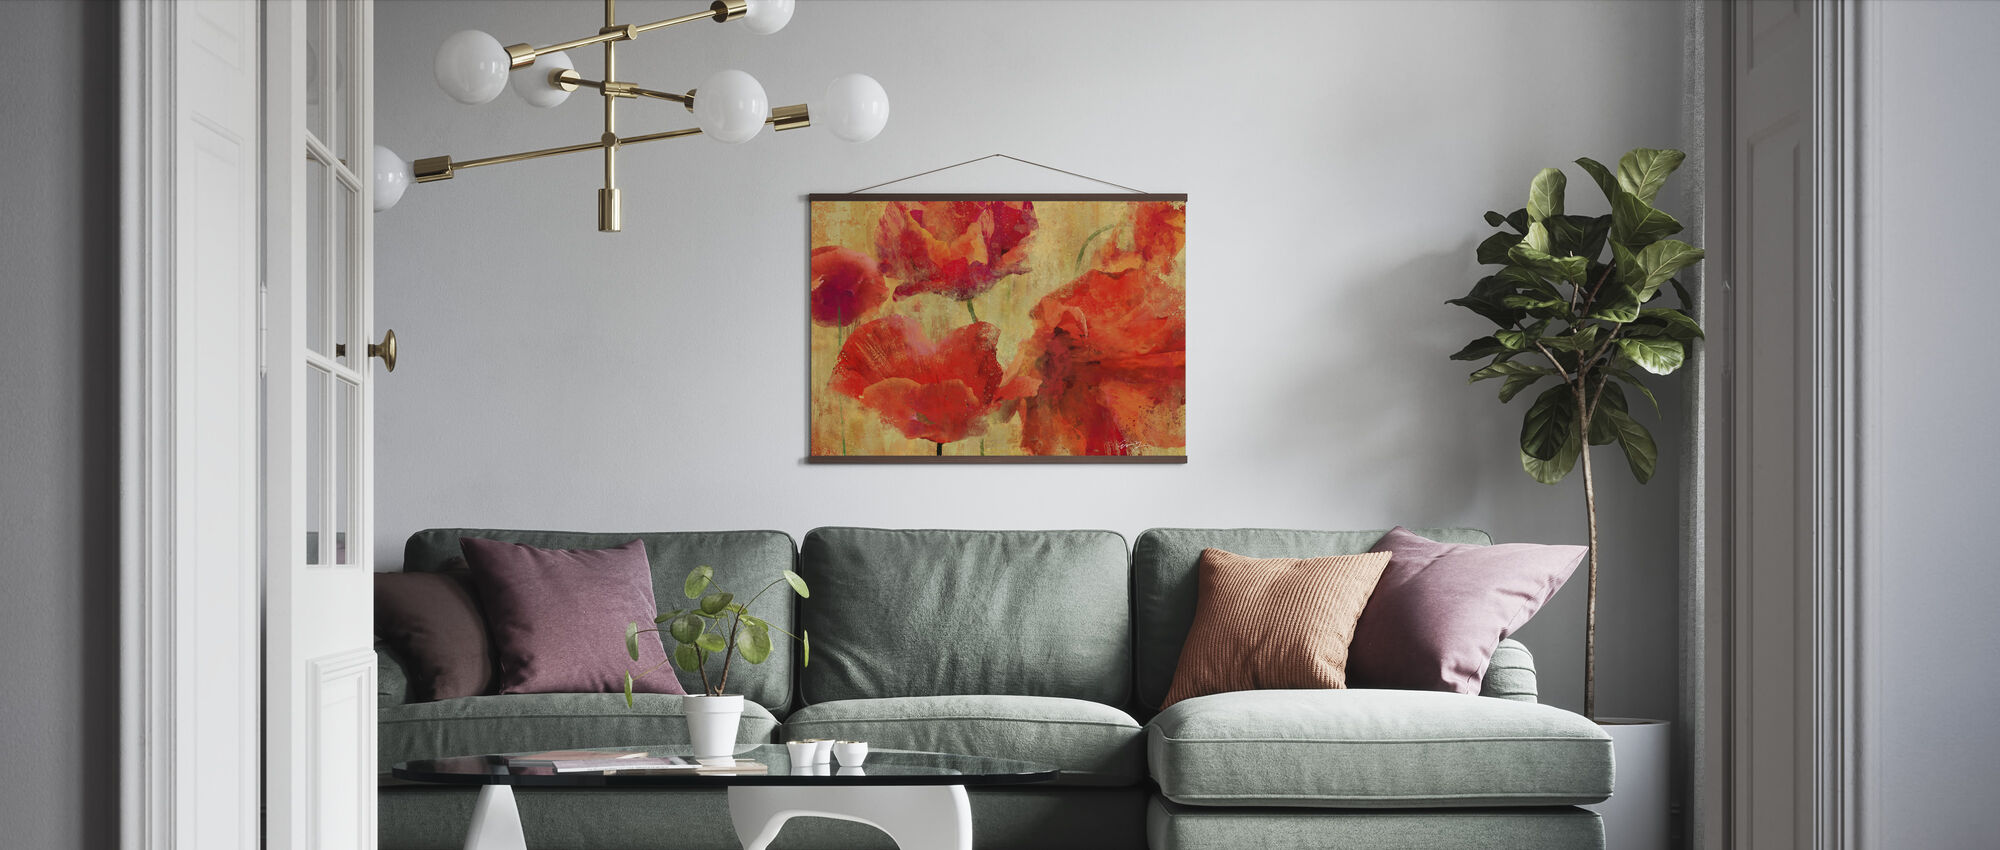 Expressive Flowers - Poster - Living Room